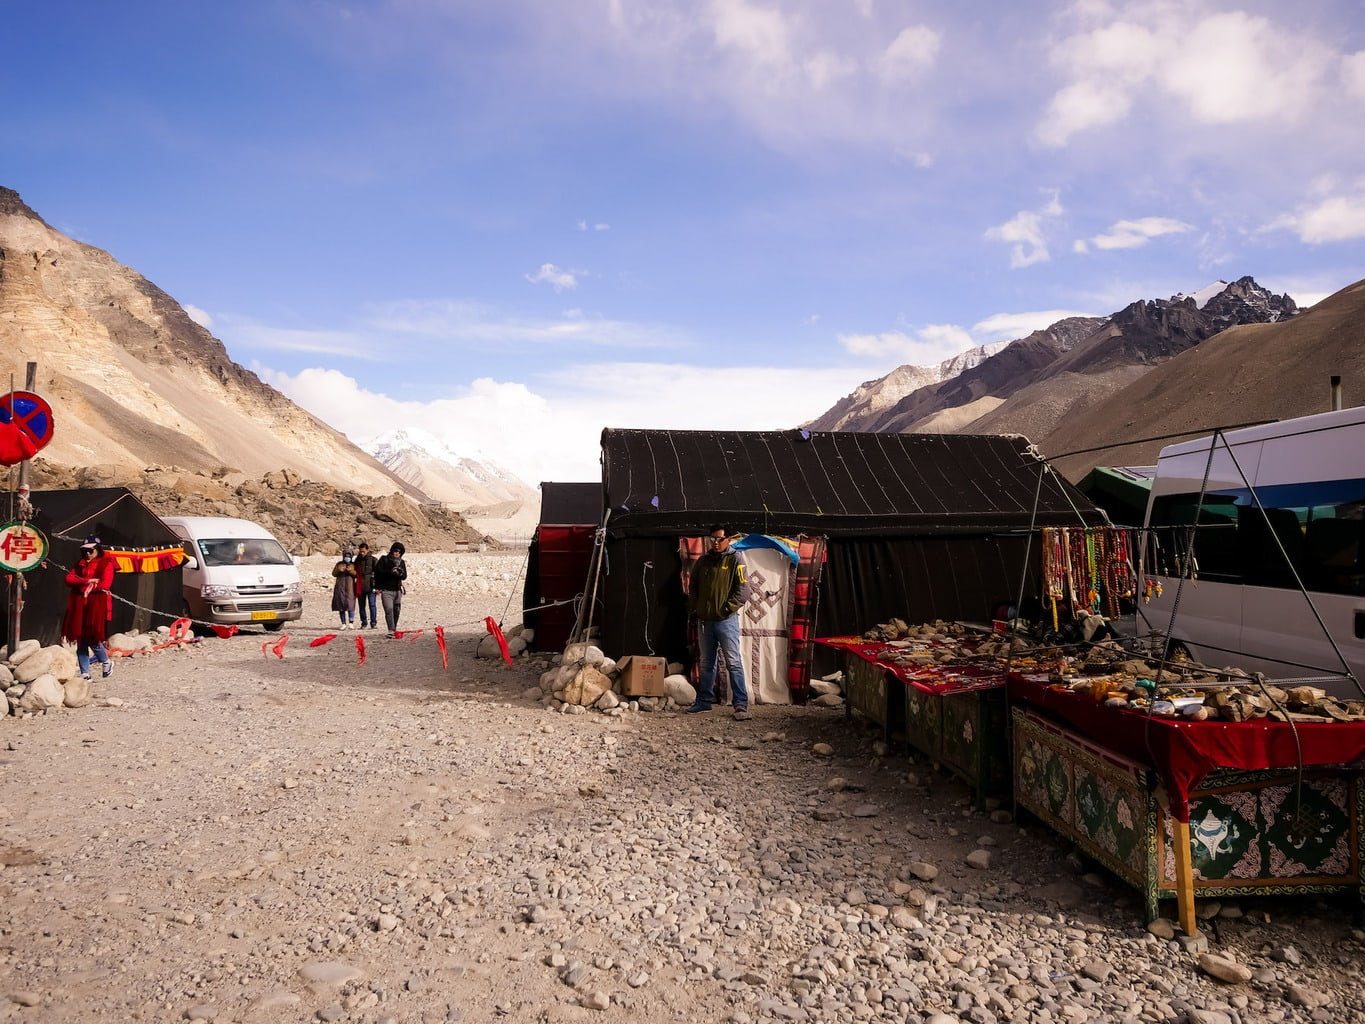 Tent hotel at Everest base camp